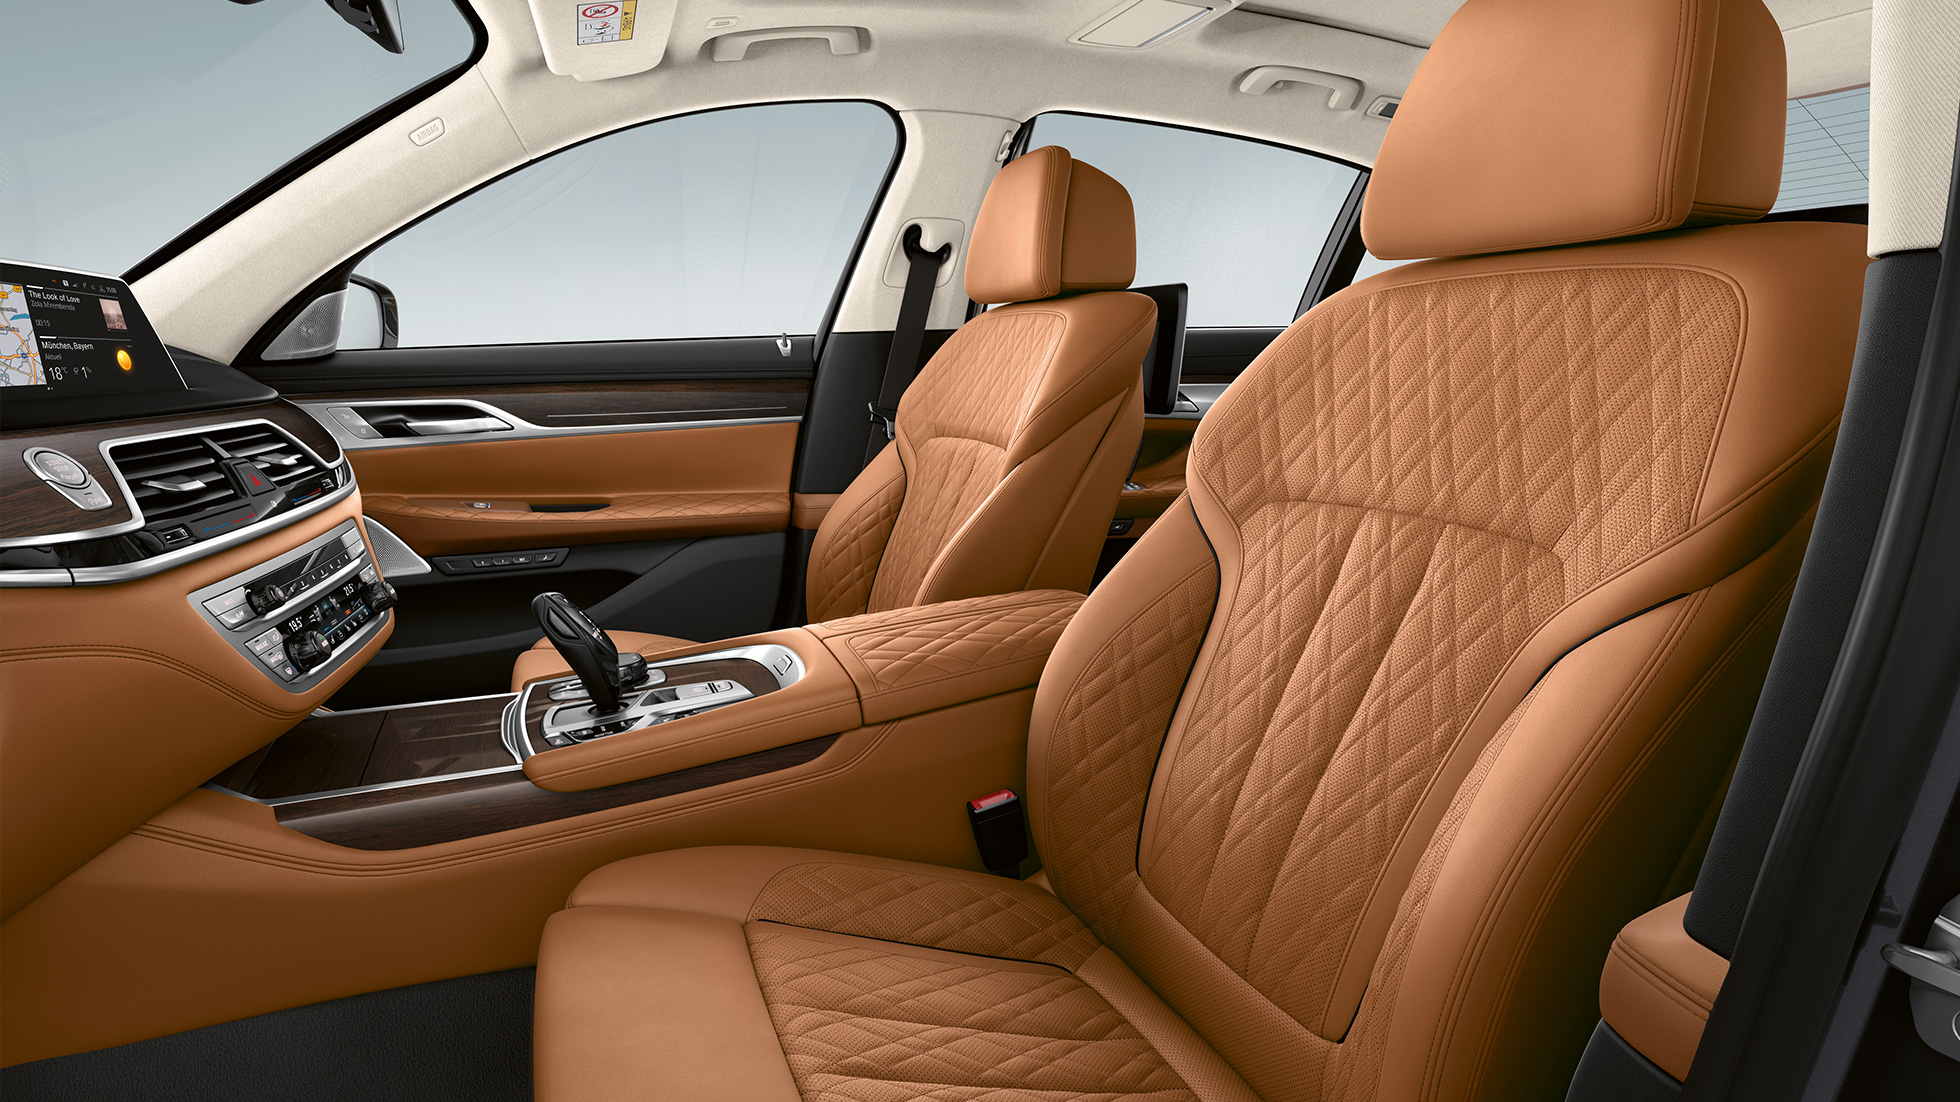 BMW 7 Series Saloon with Exterior Design Pure Excellence, Nappa leather upholstery